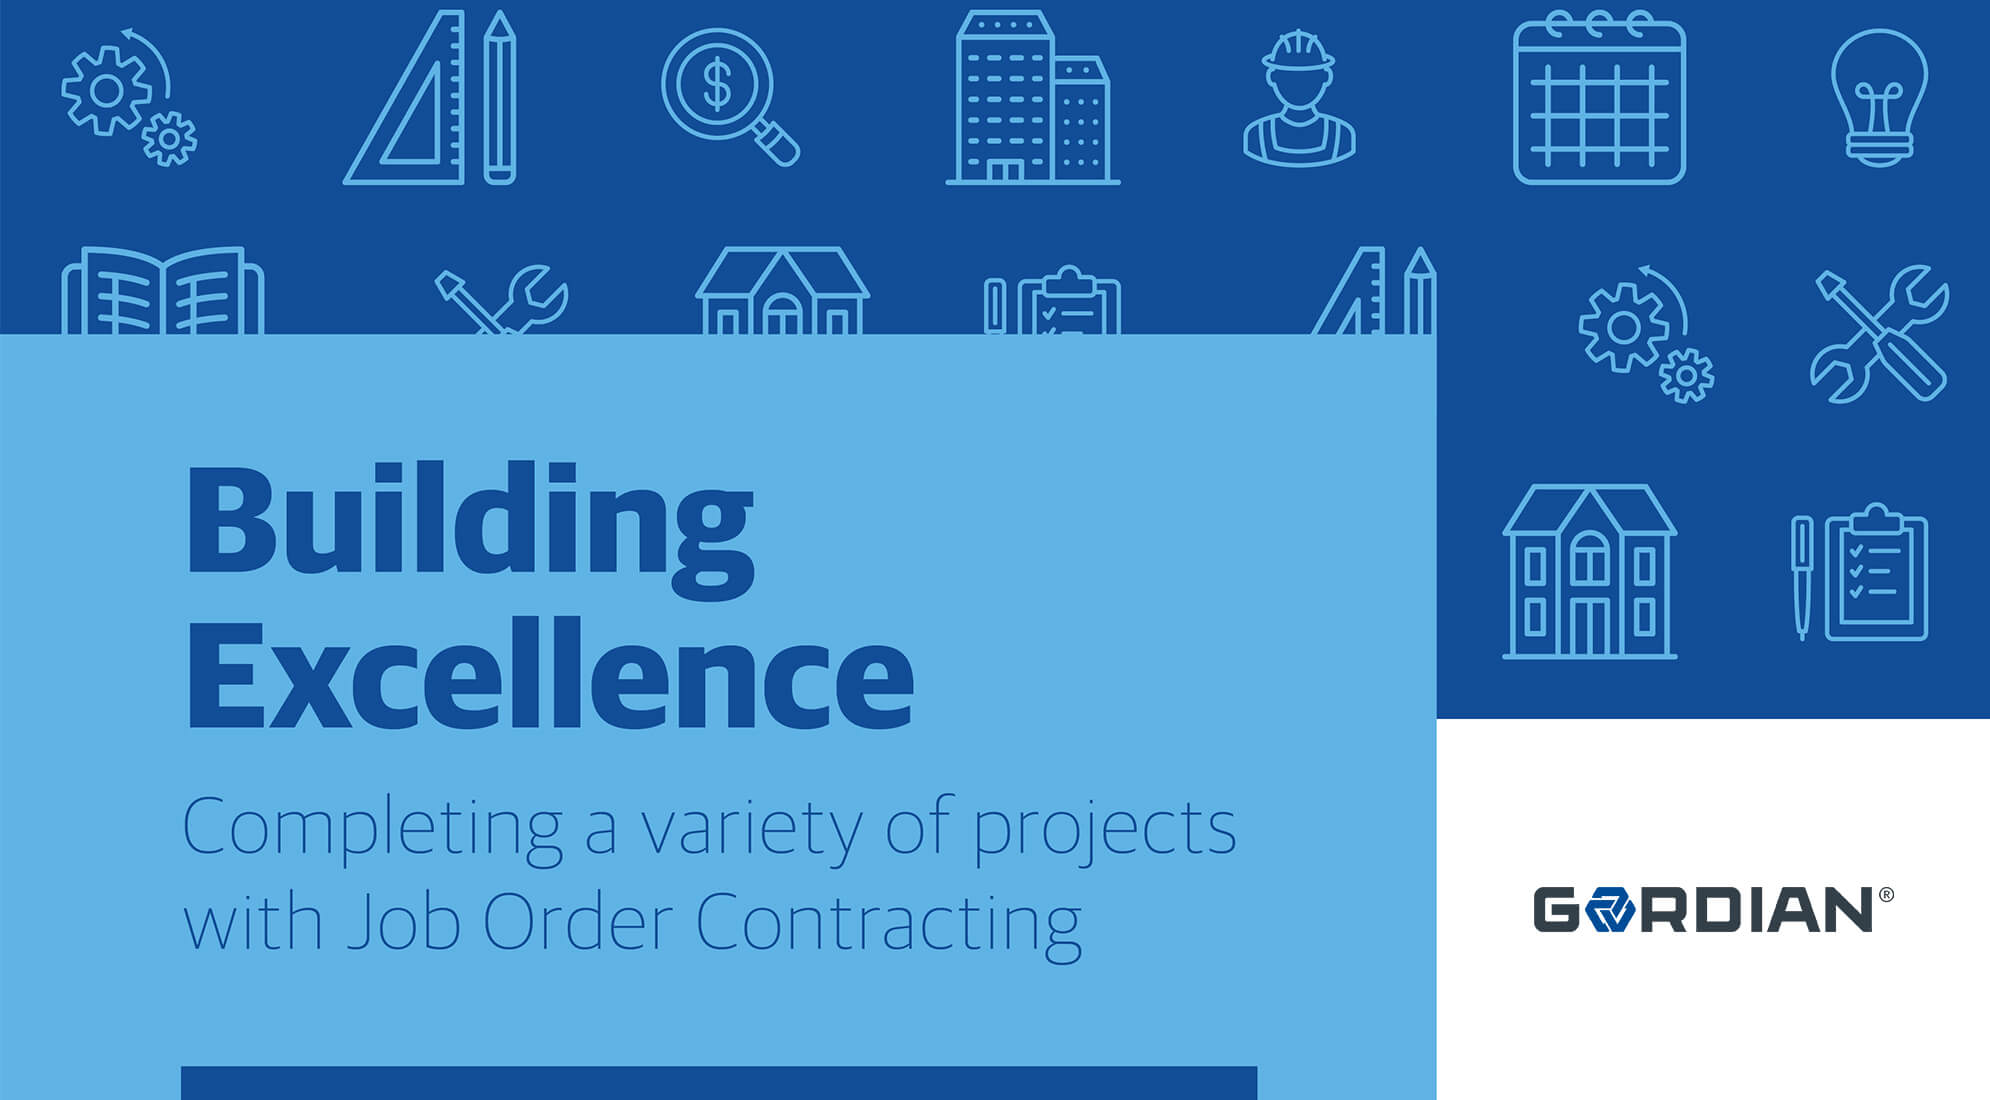 Building Excellence with Job Order Contracting.